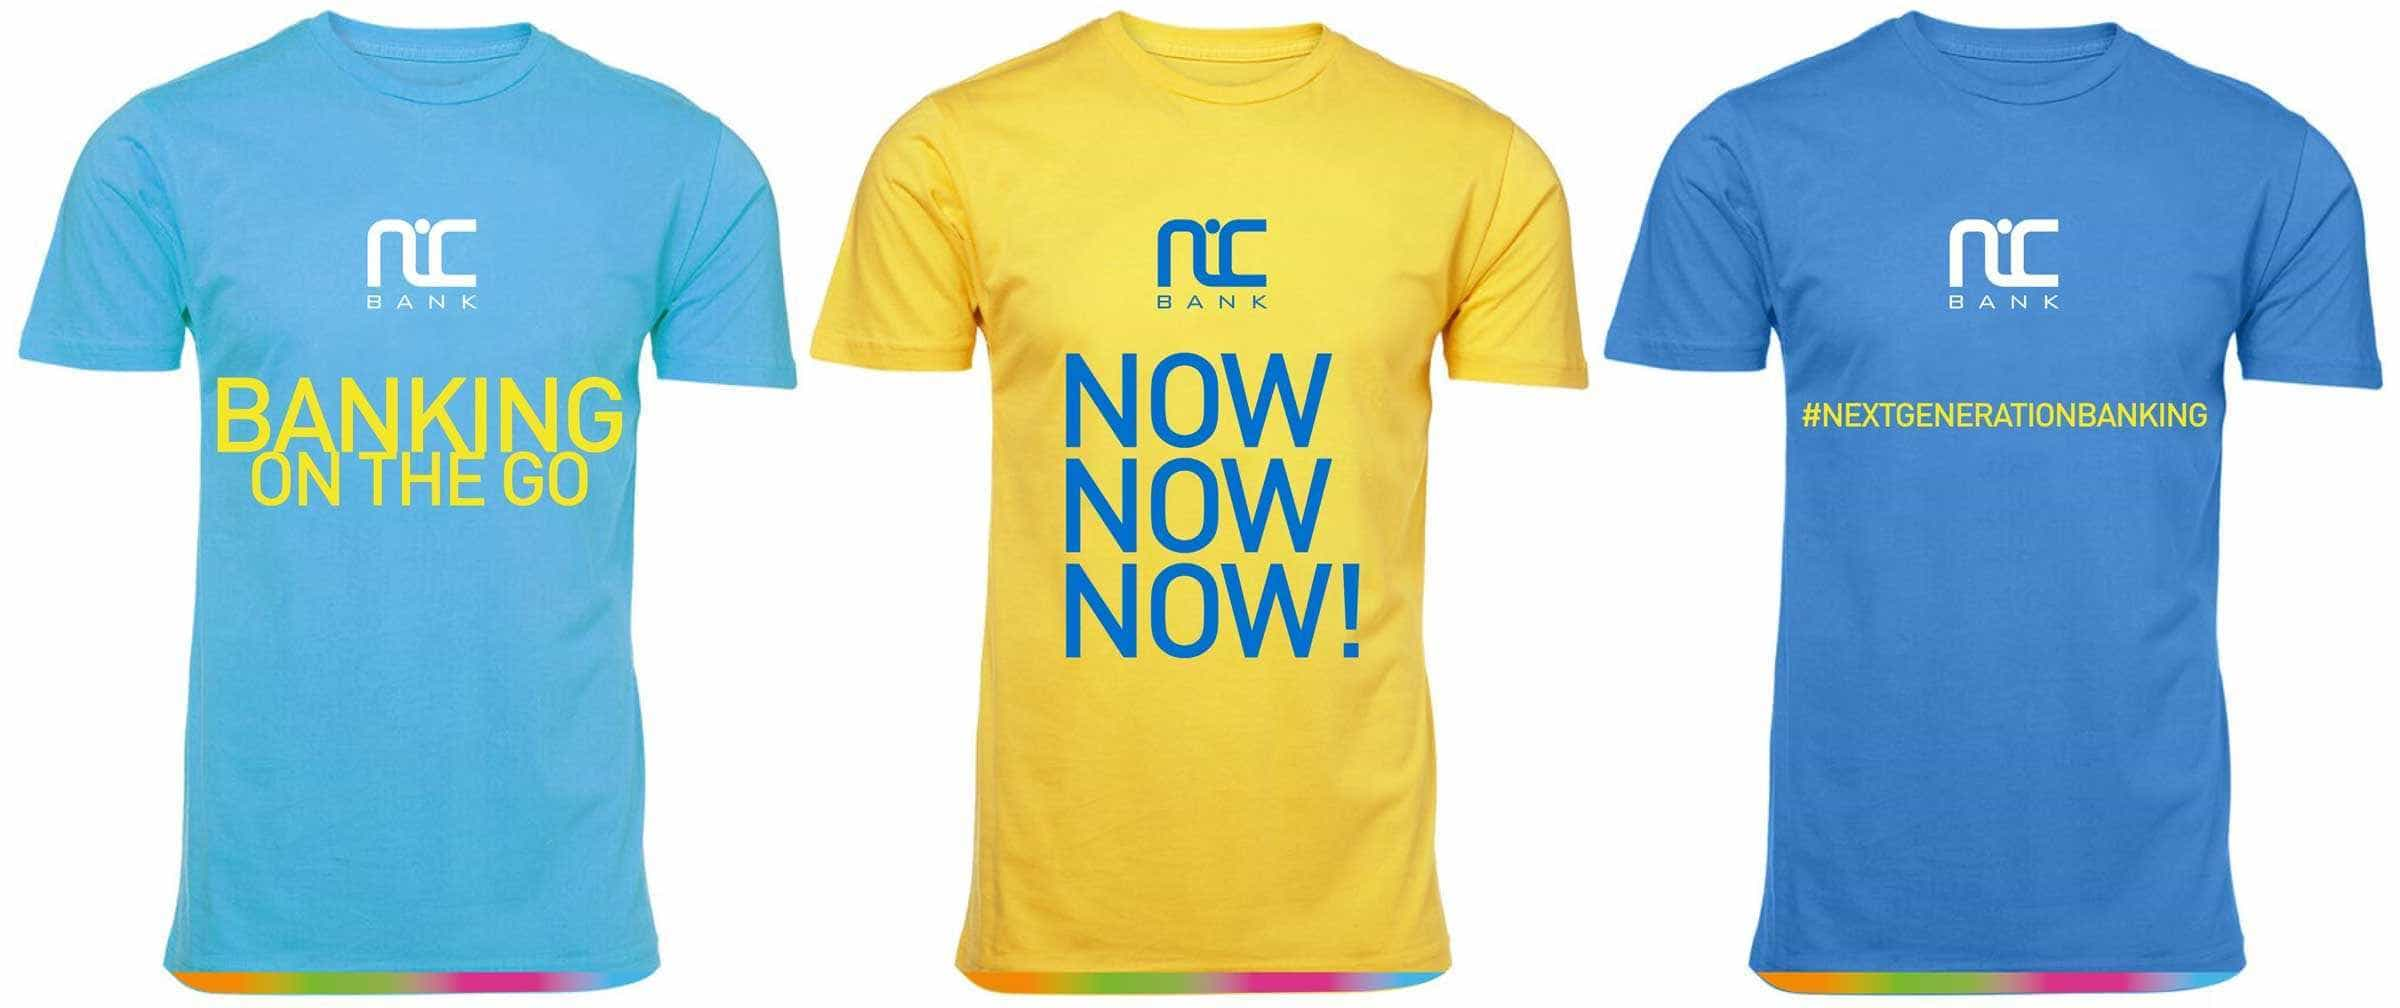 NIC Bank T-Shirt Promotion